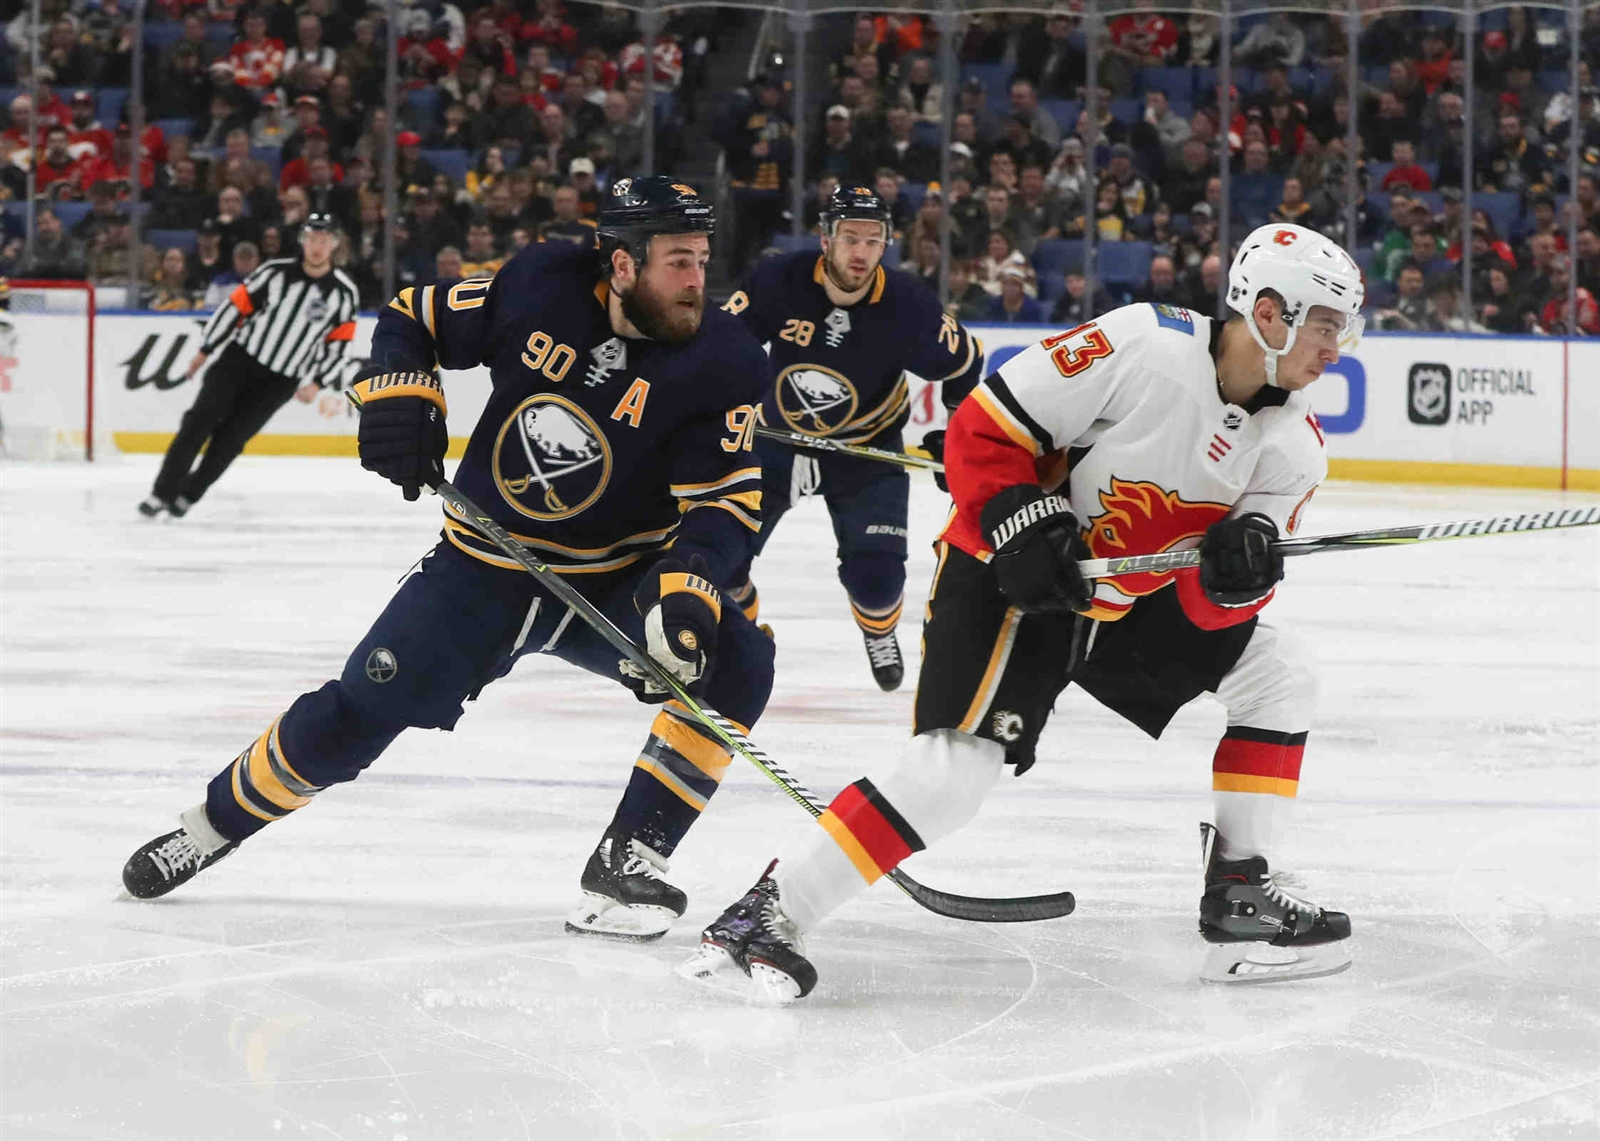 Buffalo Sabres center Ryan O'Reilly (90) skate with the puck past Calgary Flames left wing Johnny Gaudreau (13) in the first period.